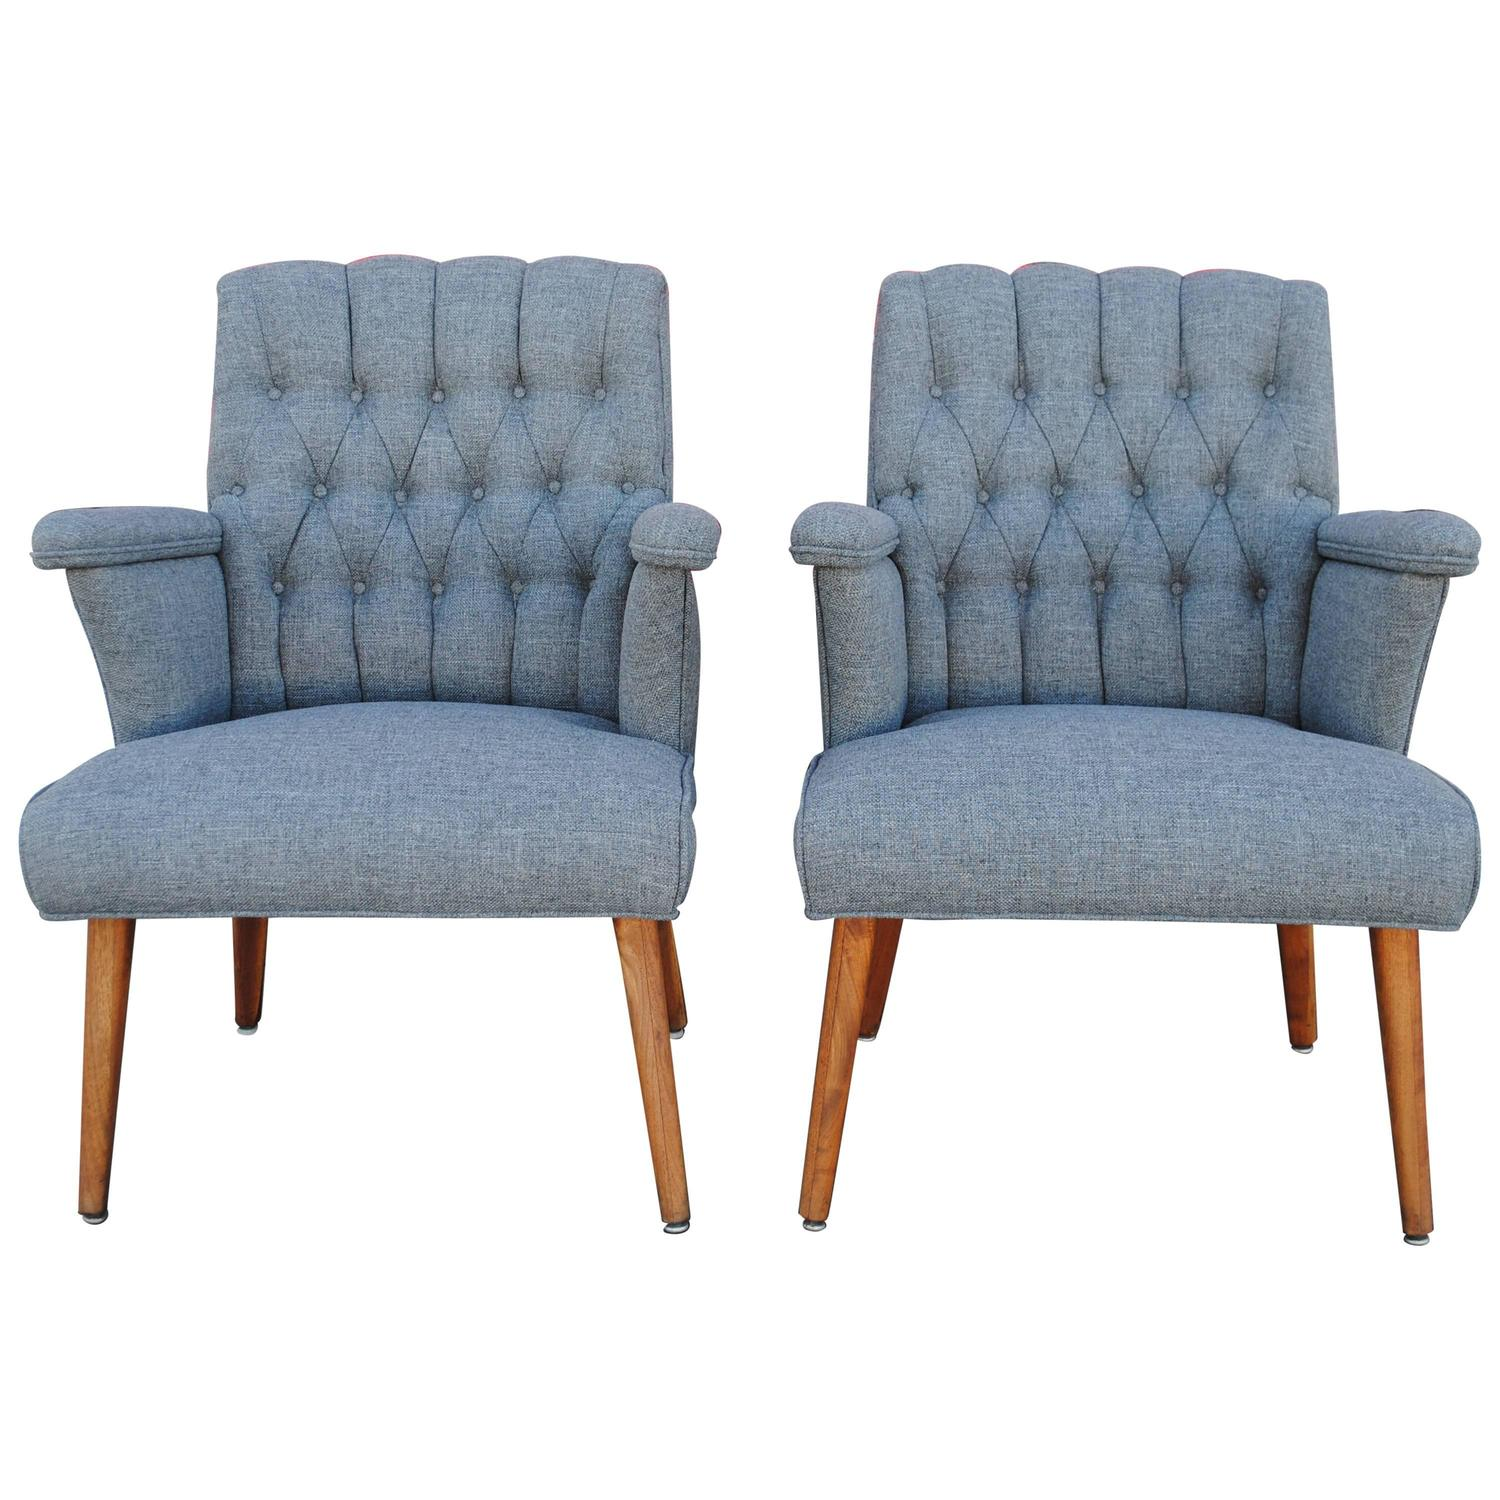 pair of mid century modern tufted lounge chairs at 1stdibs